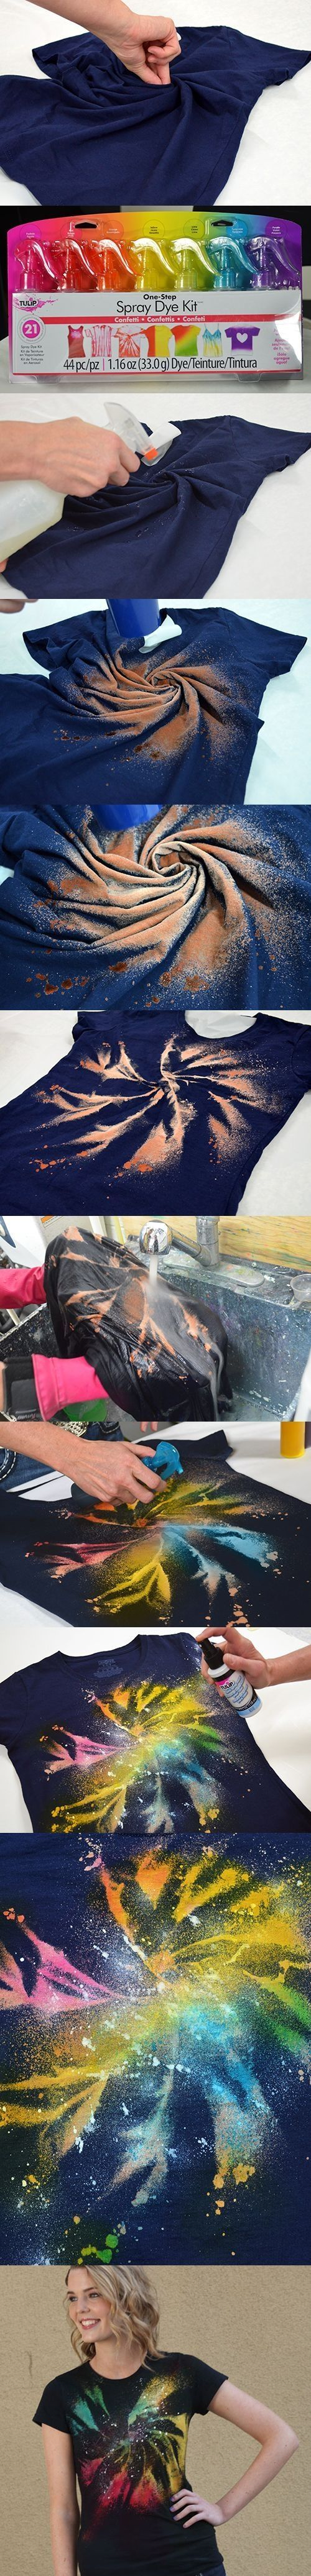 Twist shirt, spray bleach, then add colors...or just leave bleached. Fun activity for the kids while at the cabin! by sally